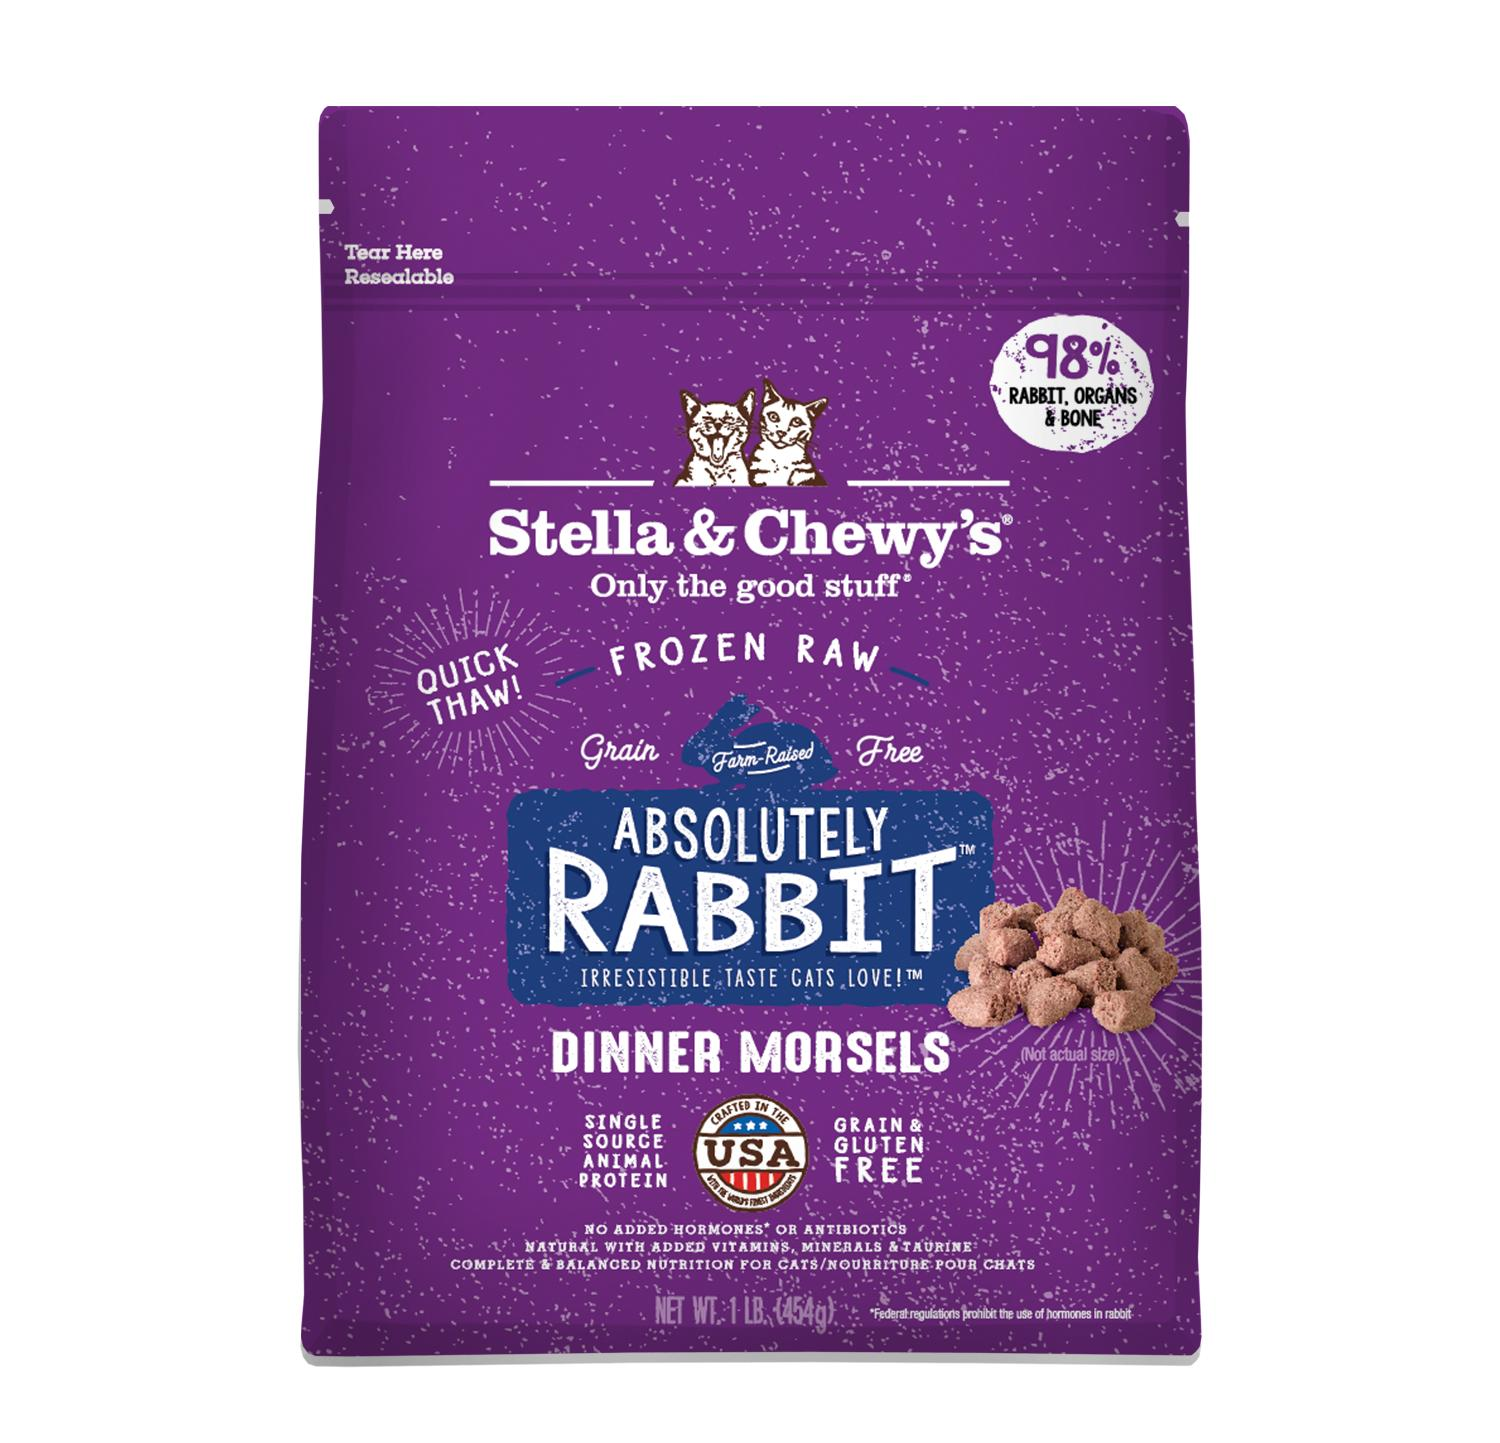 Stella & Chewy's Absolutely Rabbit Dinner Morsels Raw Frozen Cat Food, 1-lb (Size: 1-lb) Image